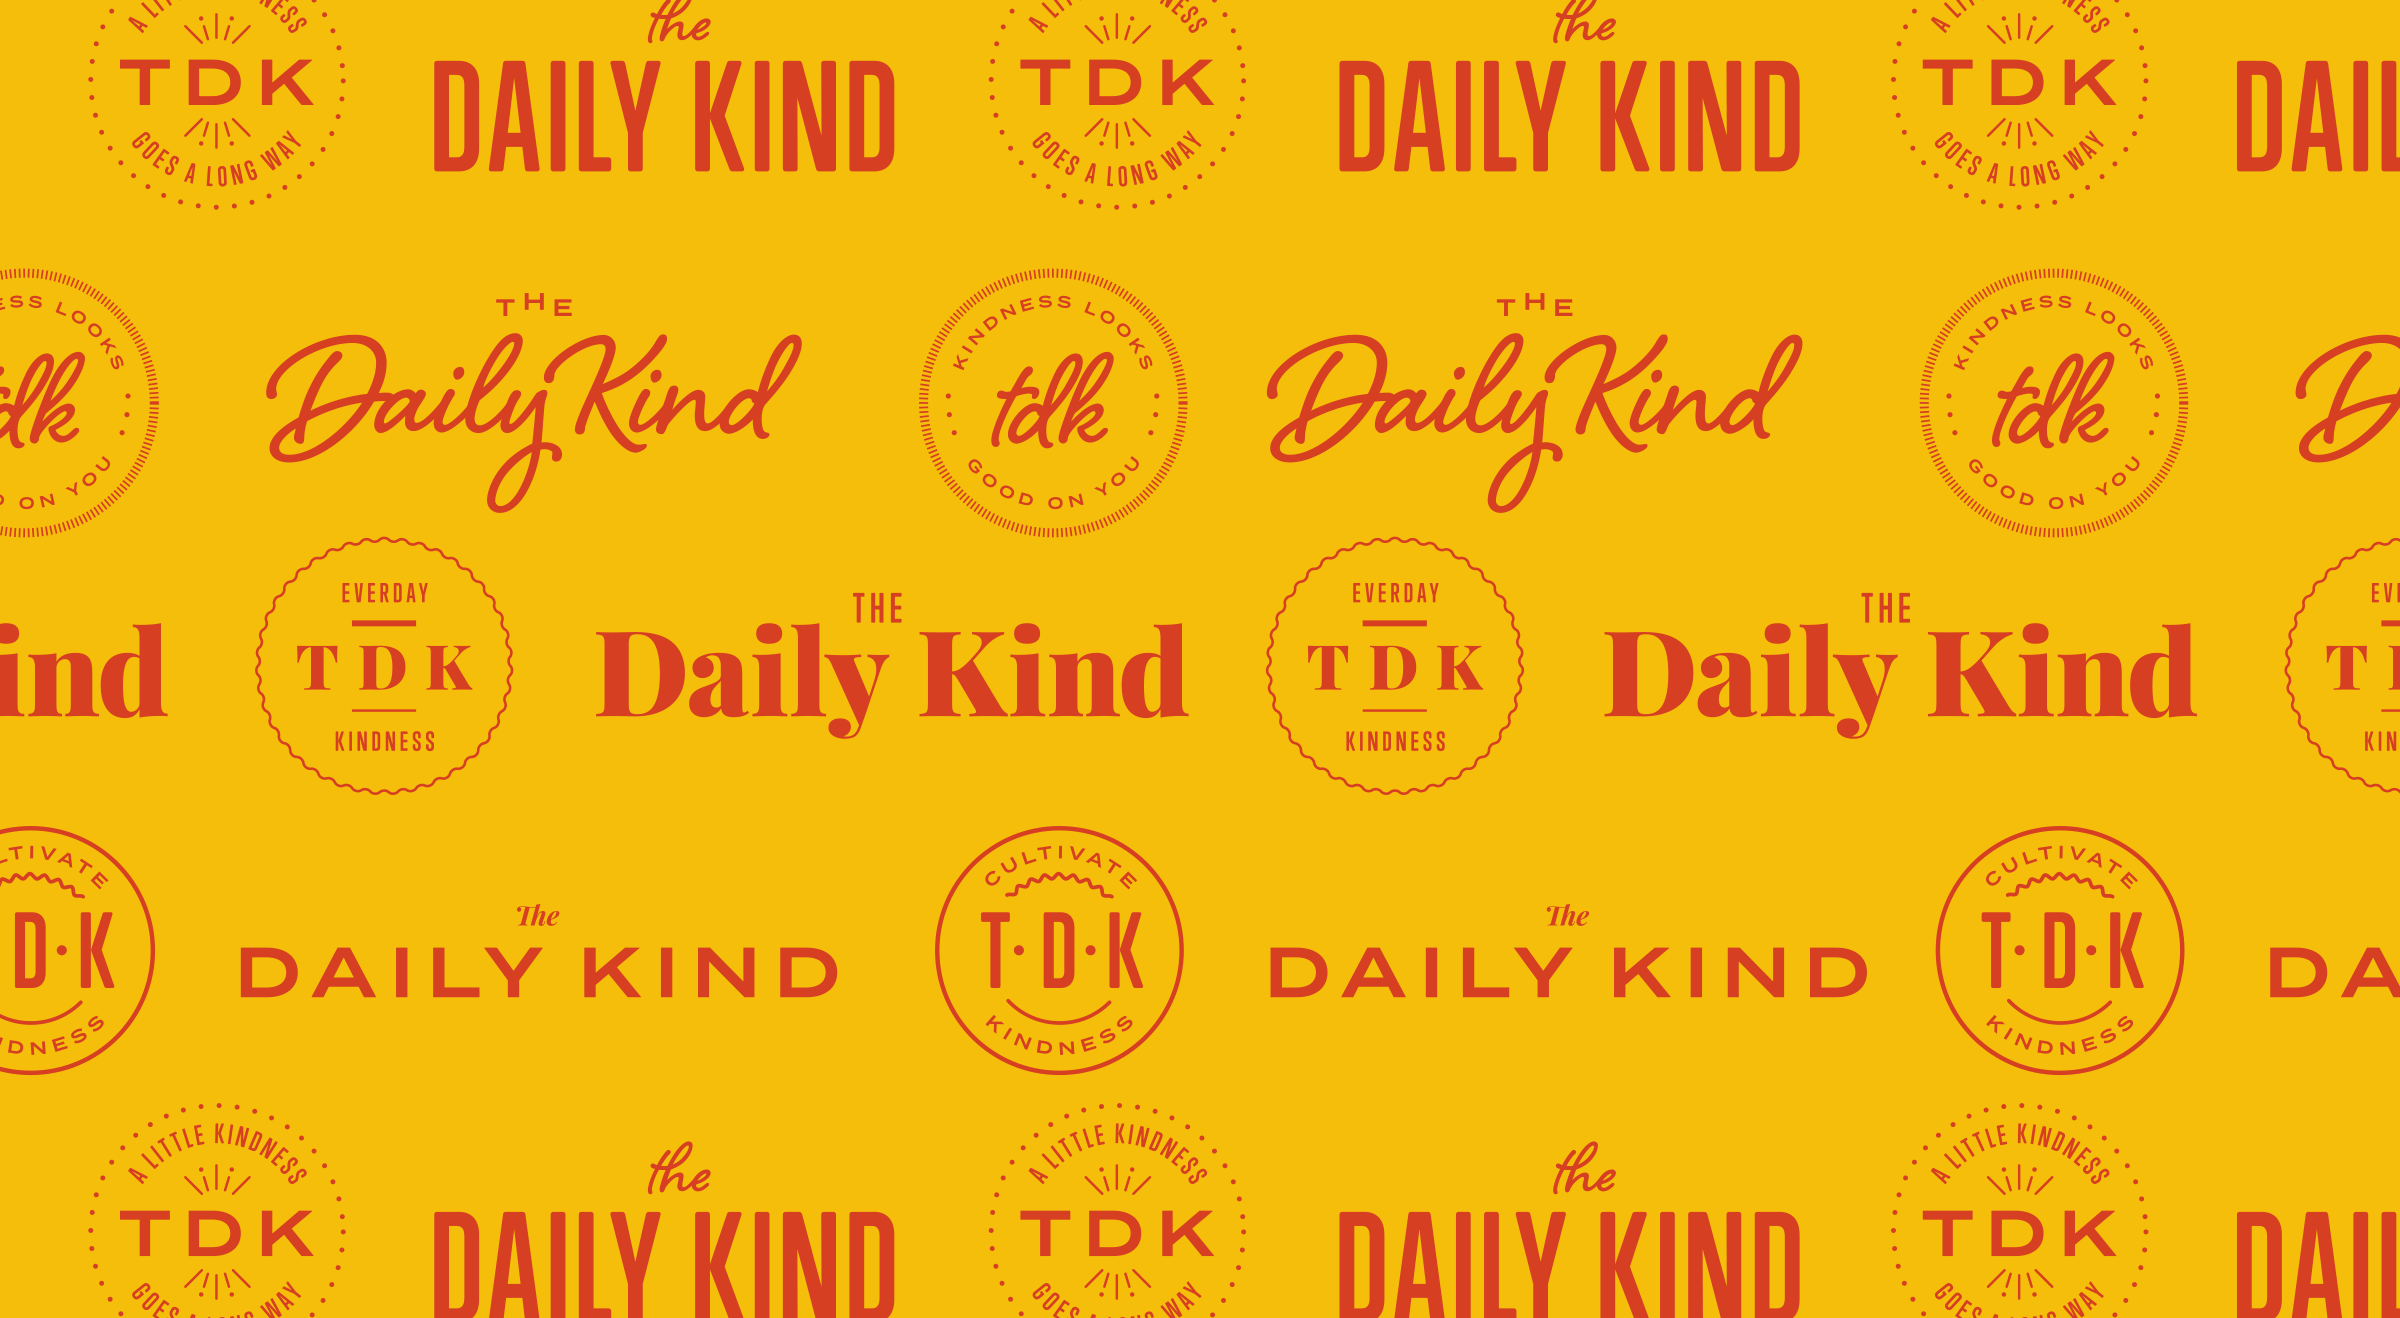 The Daily Kind Logos Gold Hero Image